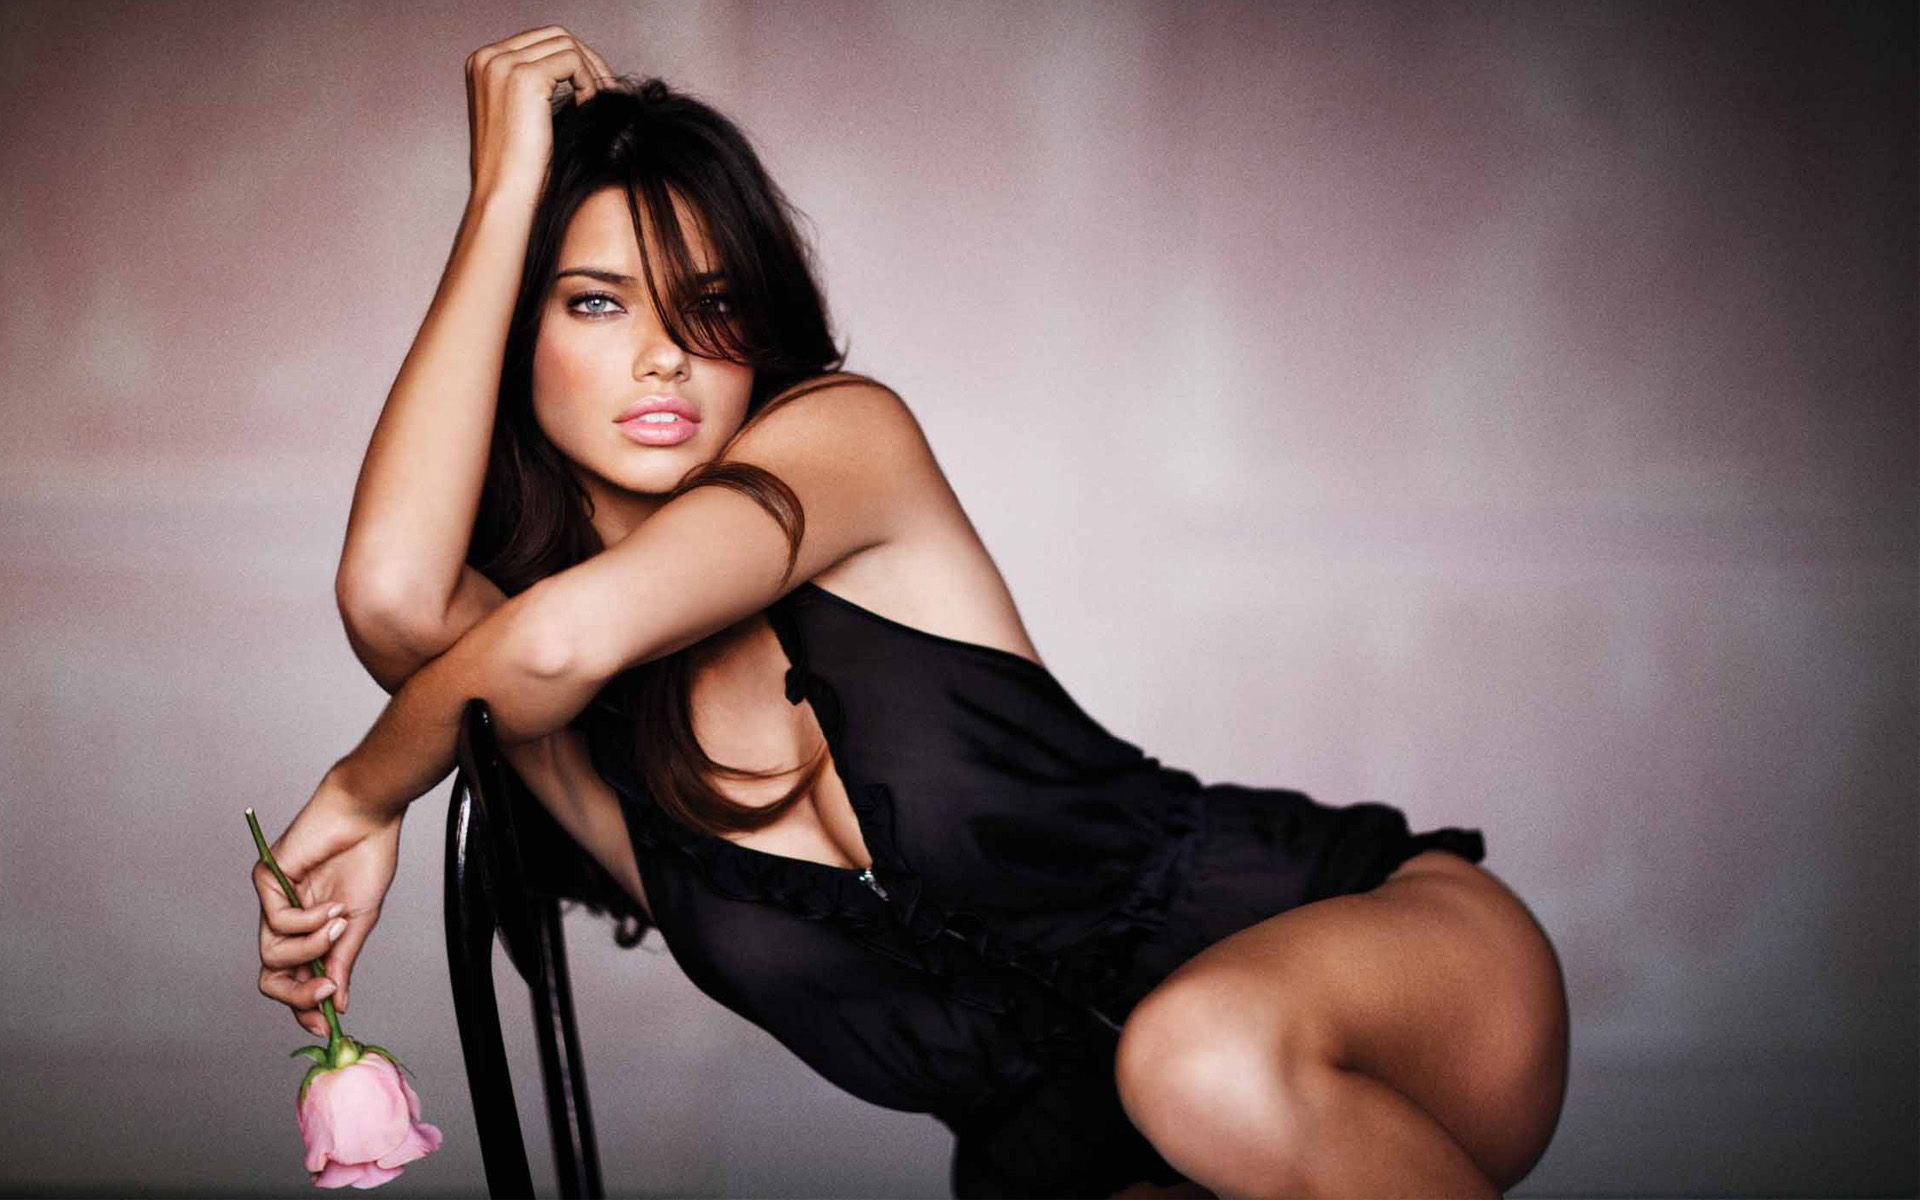 Adriana lima wallpapers pictures full hd wallpapers pinterest adriana lima wallpapers pictures voltagebd Gallery